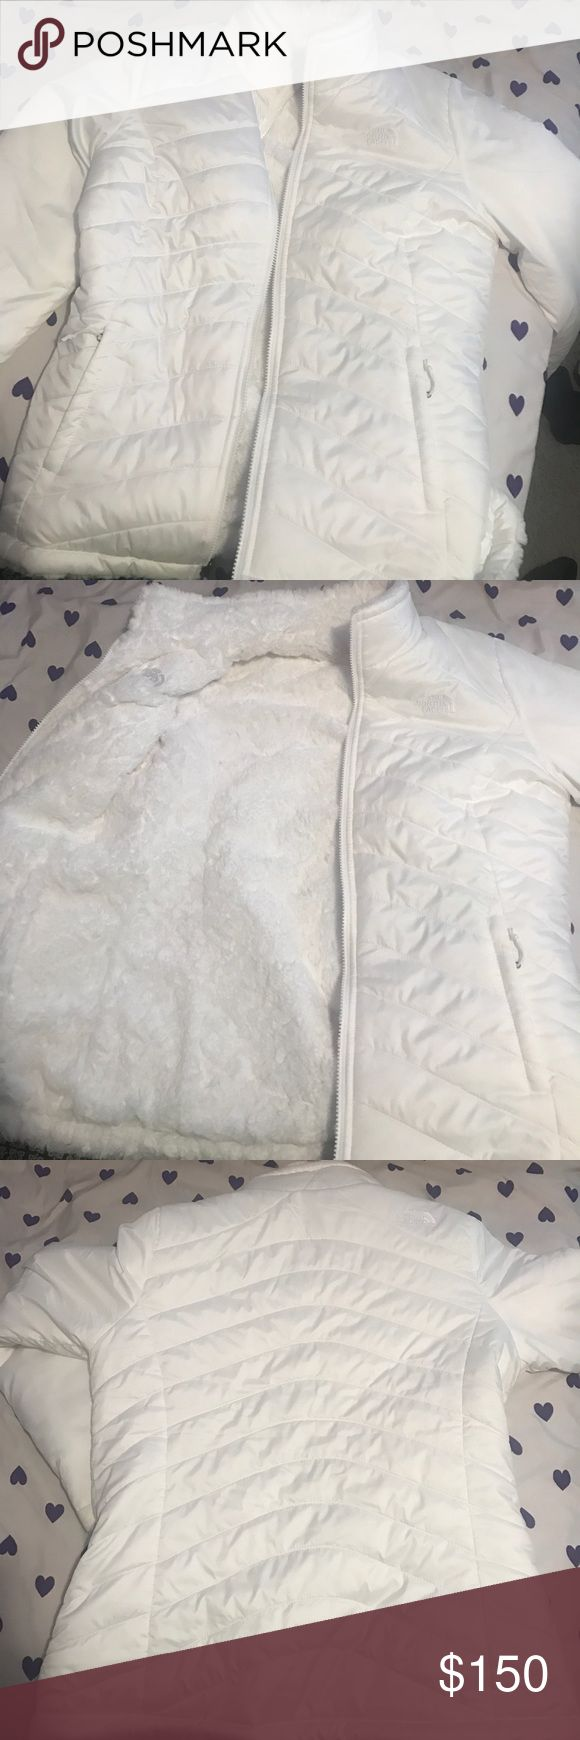 Reversible North Face Winter Jacket It is an all white reversible North Face jacket. One side is a windbreaker and the other is all fur! Worn only a few times! North Face Jackets & Coats Puffers